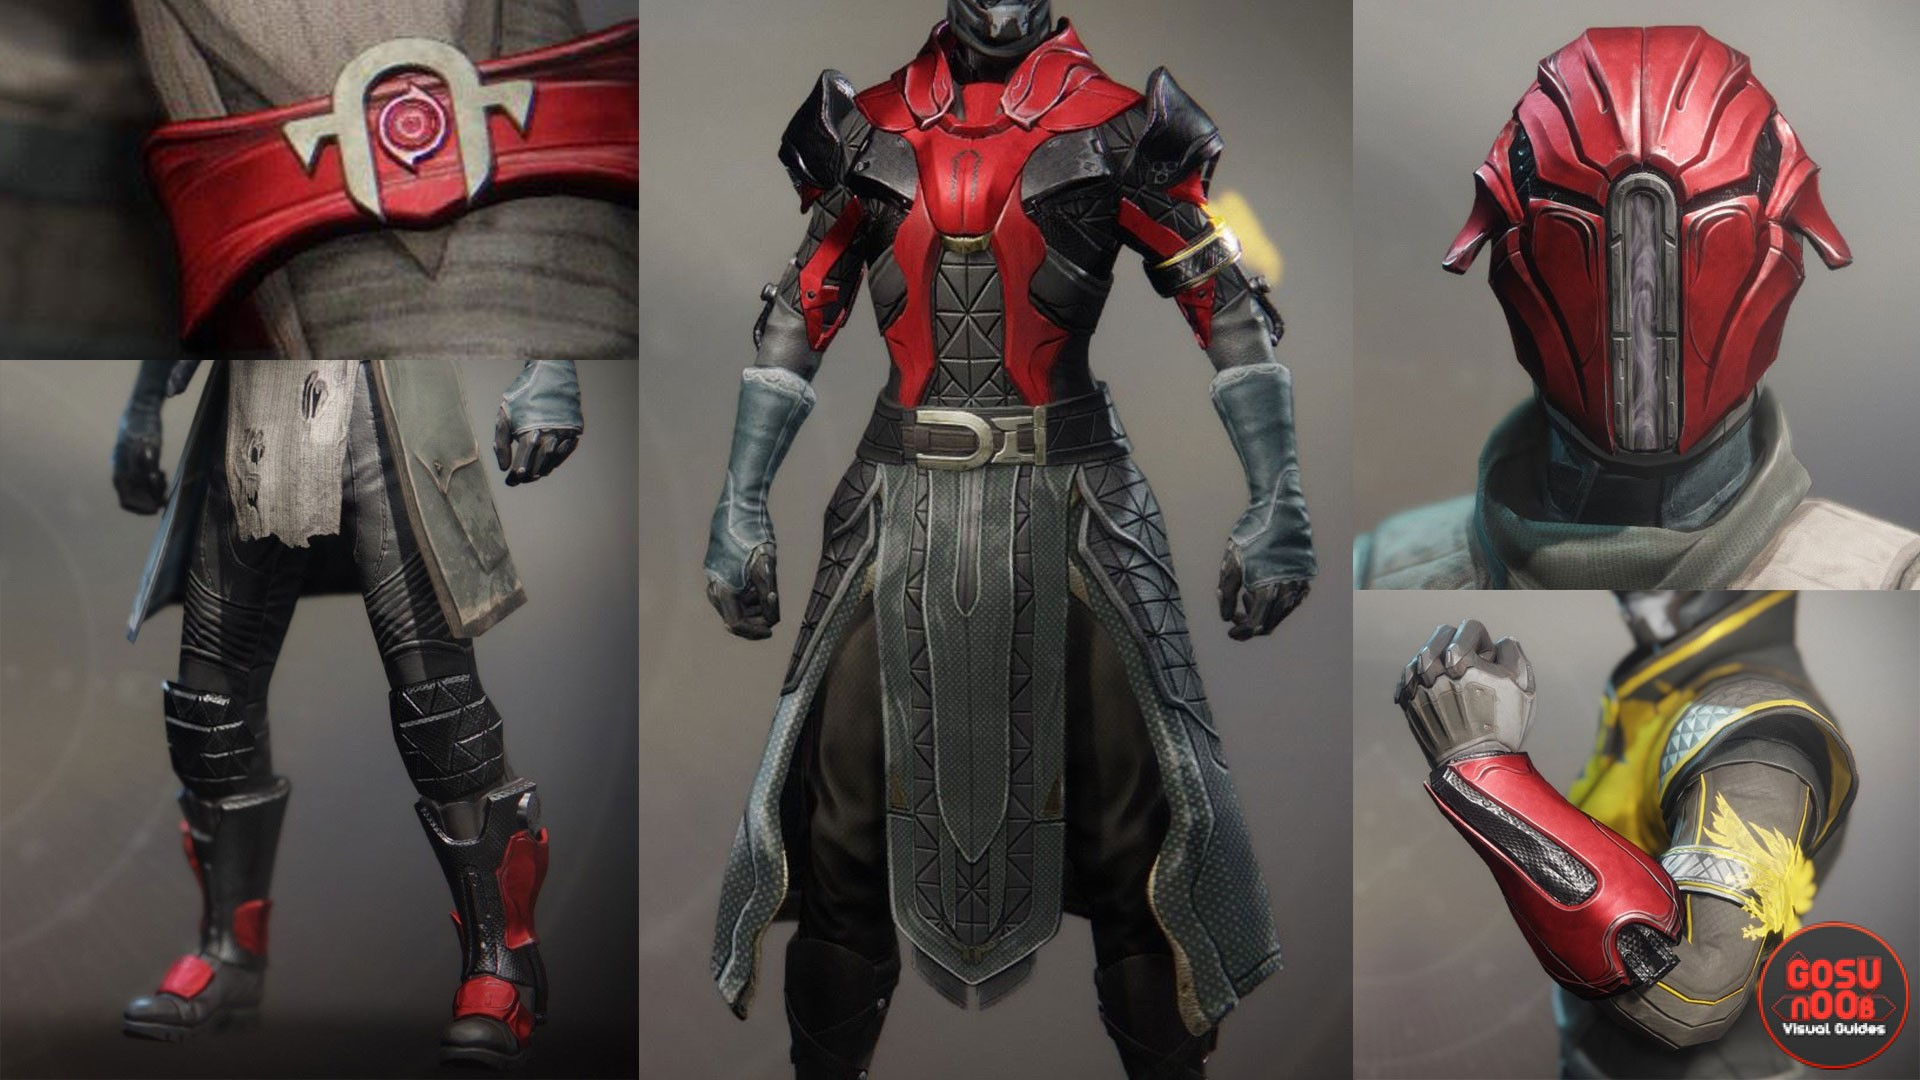 Destiny 2 Scourge of The Past Raid Rewards - Loot, Weapons, Armor